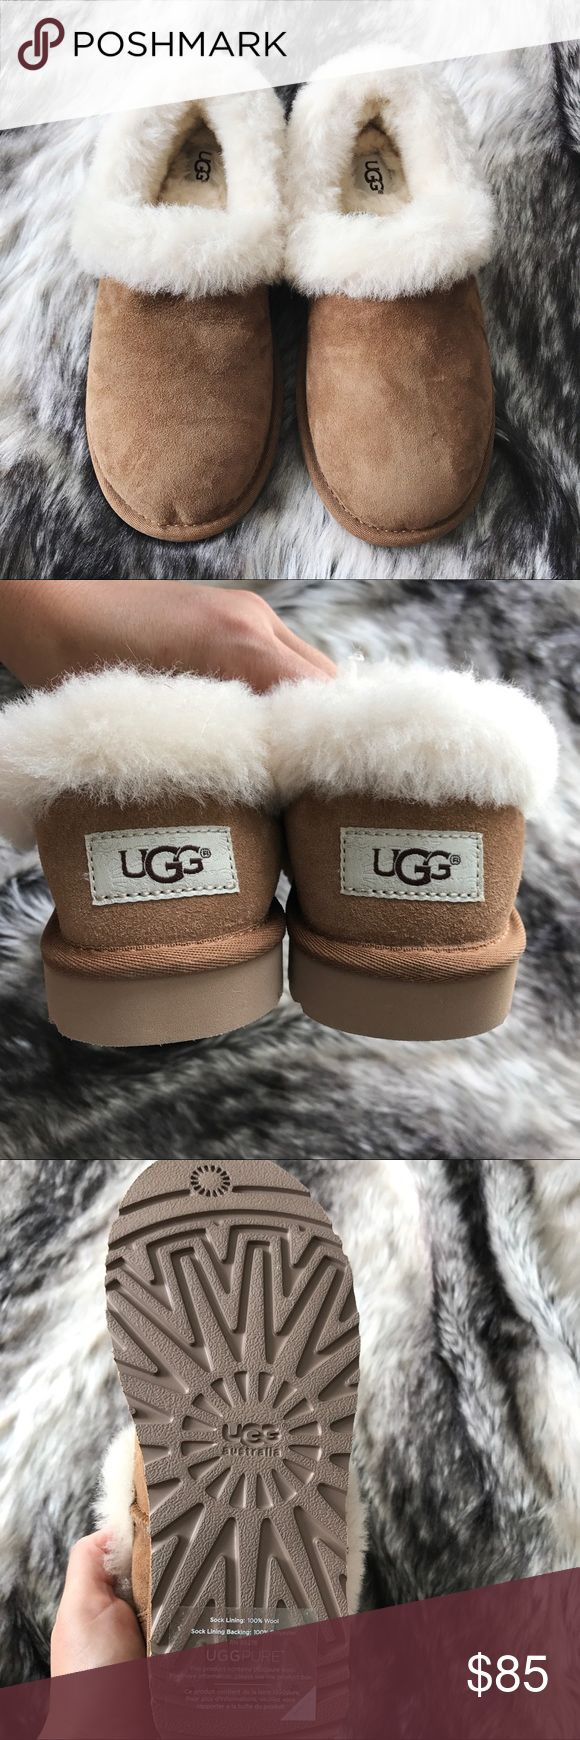 Ugg Shearling Slippers •A fluffy, genuine shearling collar tops a comfy suede slipper that's sure to be a go-to in your casual wardrobe. The lining is plush UGGpure, a textile made entirely from wool but engineered to look and feel like shearling.  •Size 6, runs narrow.  •Display shoe, like new condition. Original shoe box NOT included.  •NO TRADES/HOLDS/PAYPAL/MERC/VINTED/NONSENSE. UGG Shoes Slippers